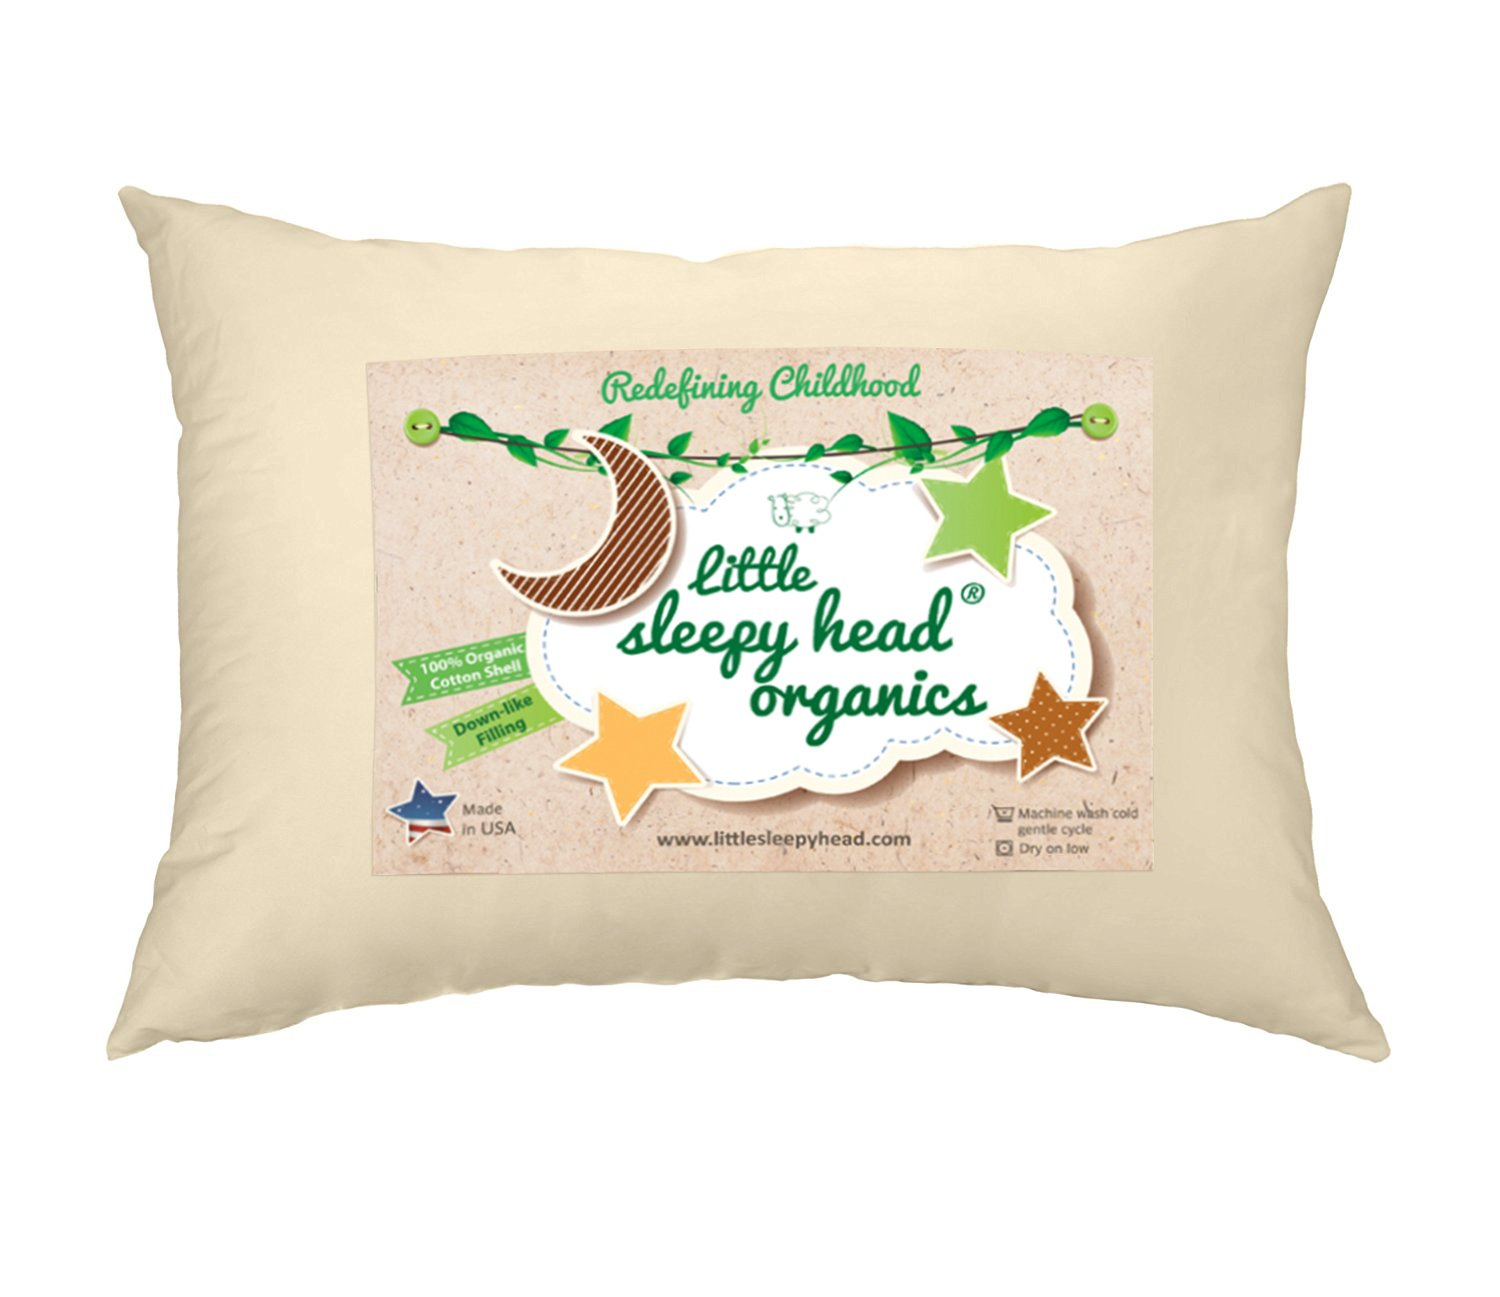 dp co amazon pillow home down silentnight goose kitchen pillows uk